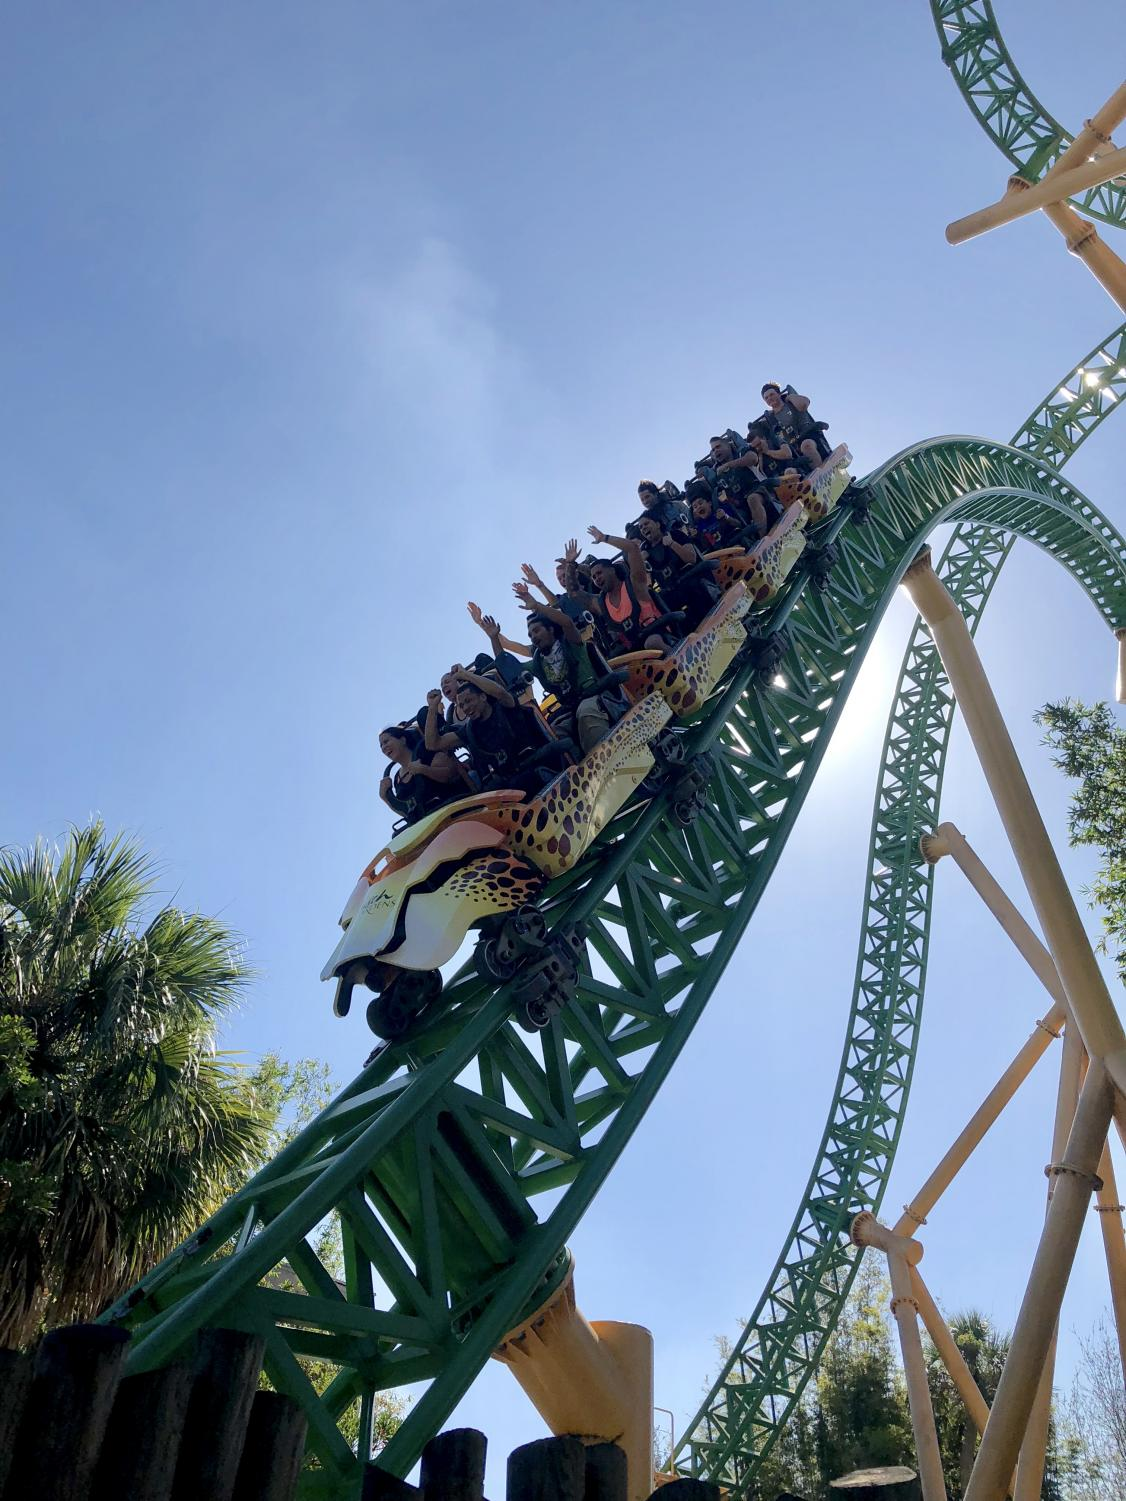 Students ride various roller coasters for science and discovery of g-forces.